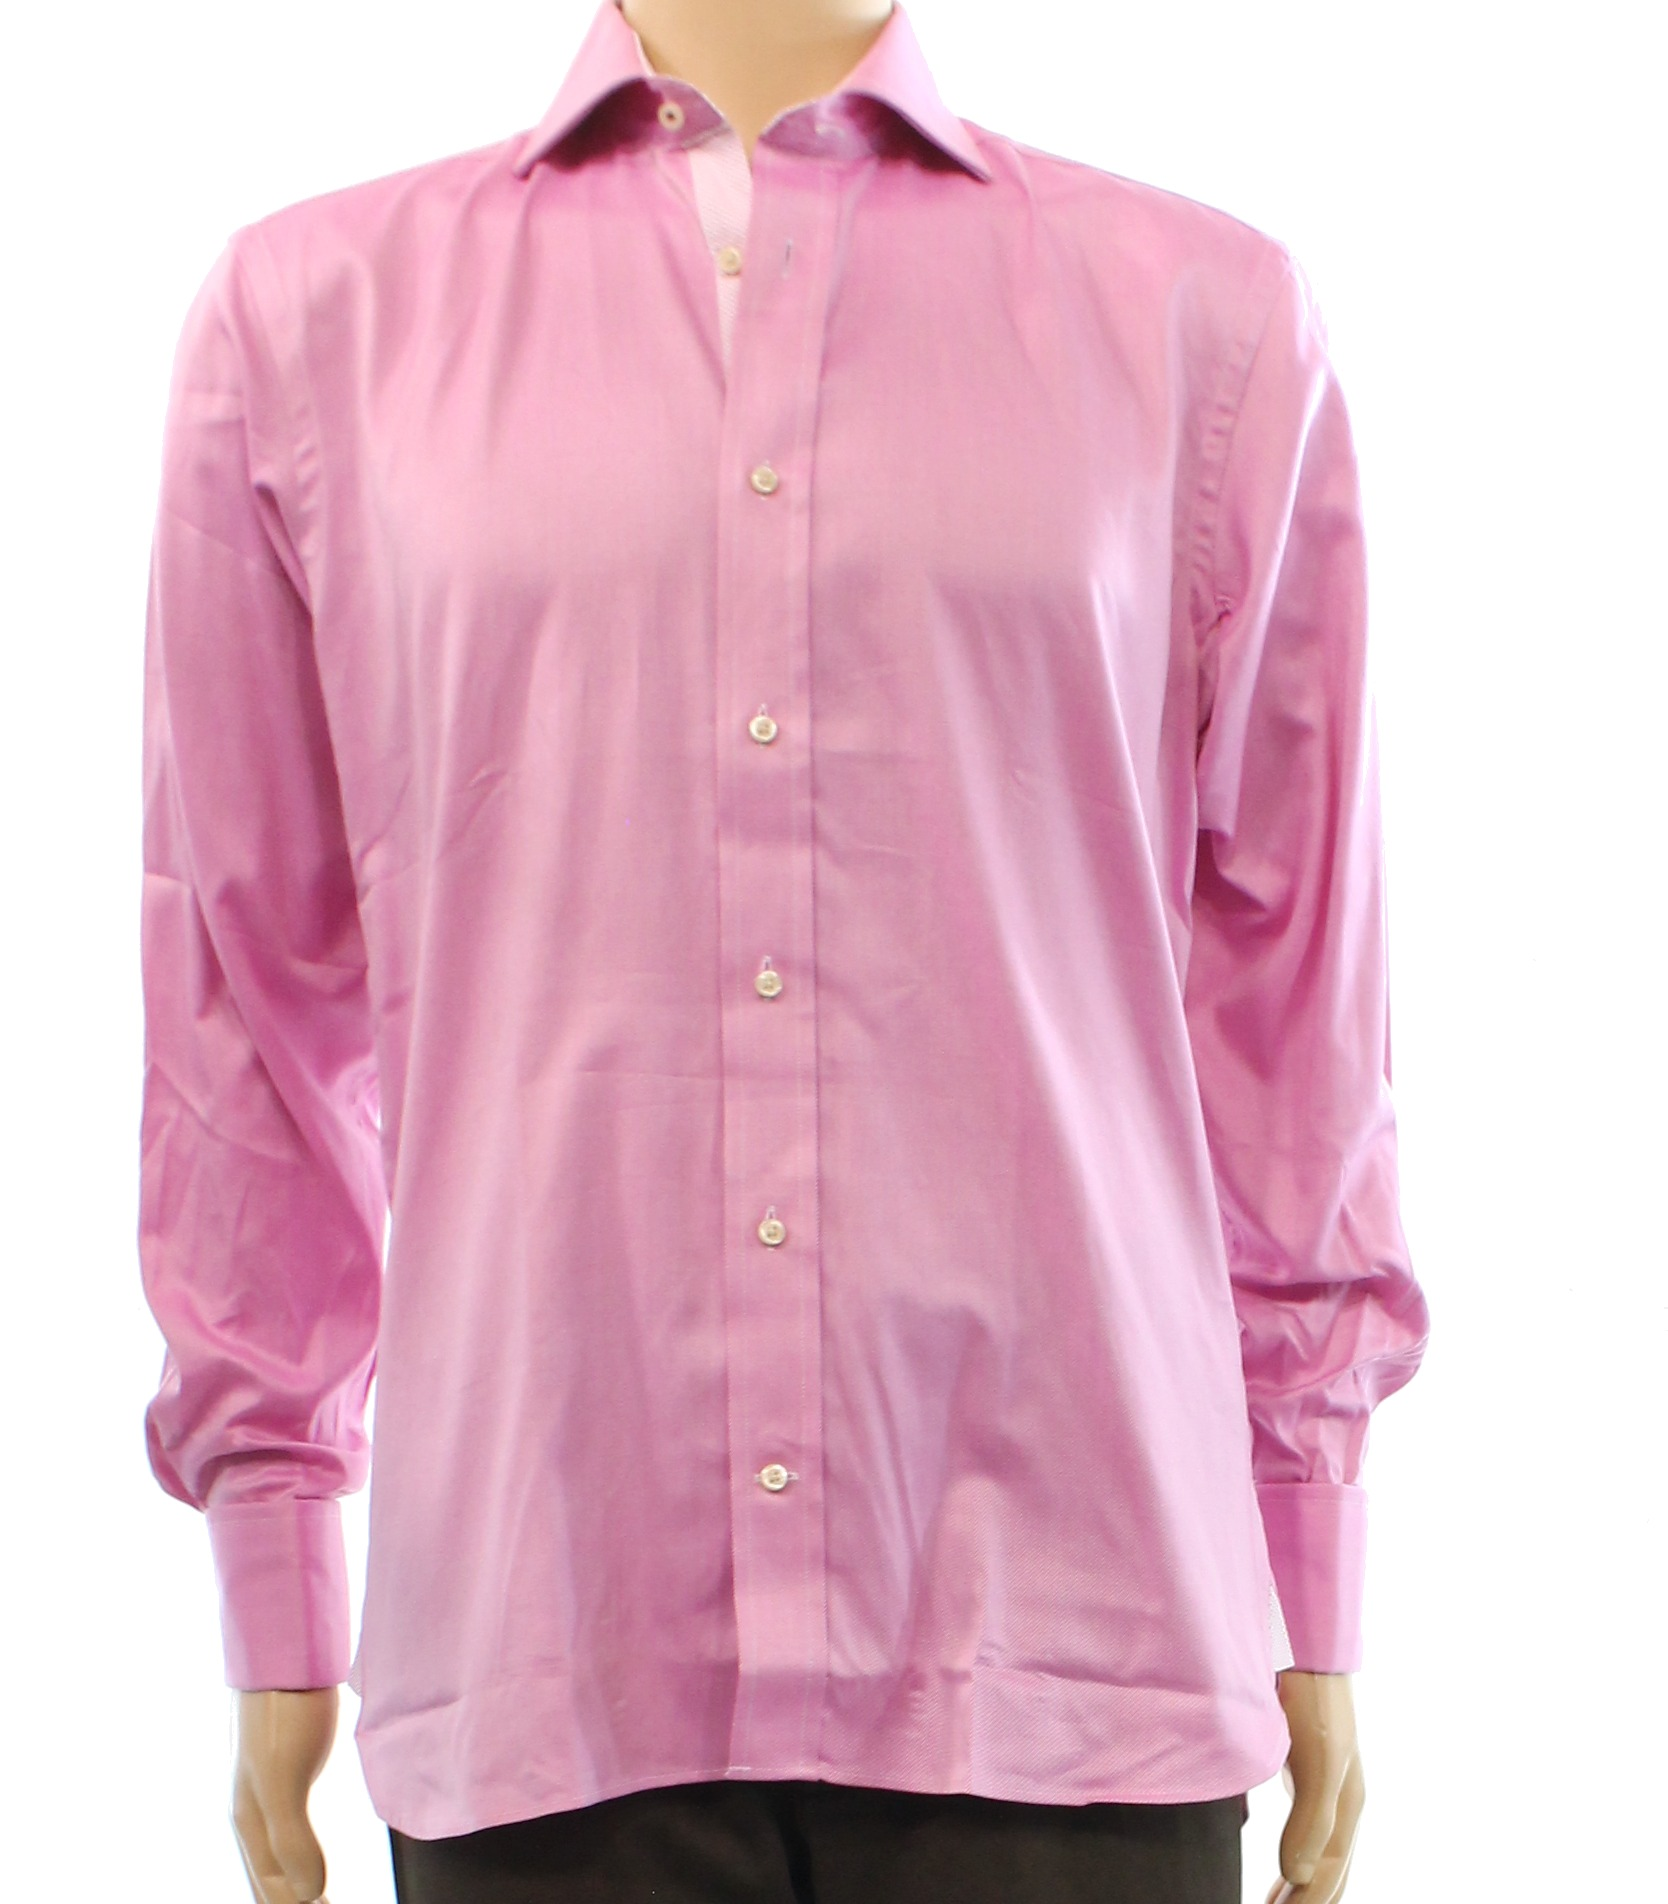 c2ea7876b526 Ted Baker Pink Endurance Mens USA Size 15 1 2 Cotton Dress Shirt ...